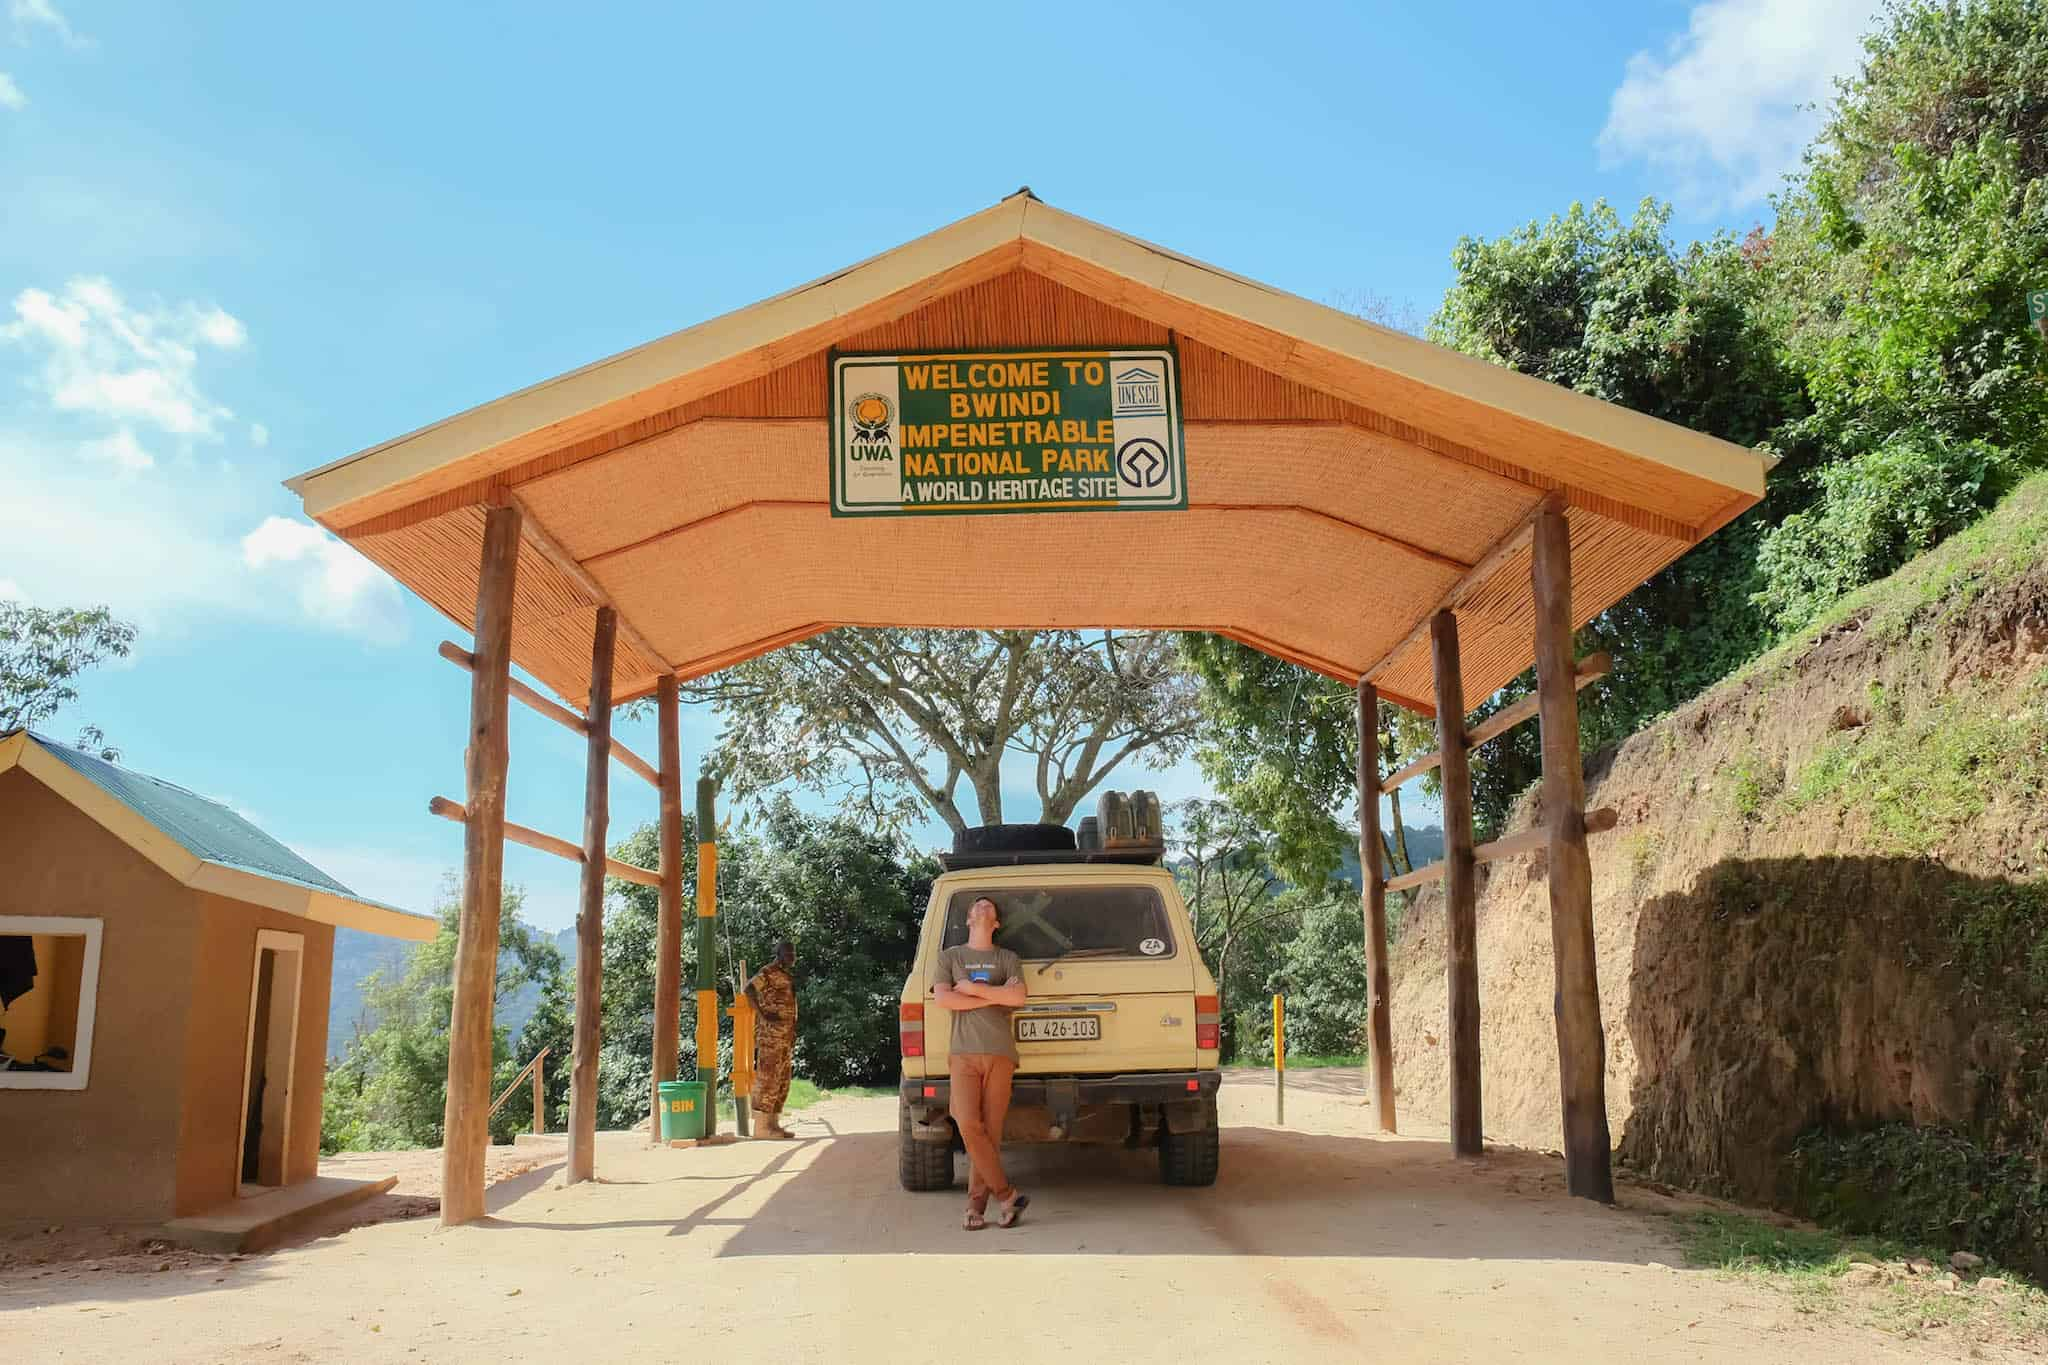 Arriving to Bwindi Impenetrable National Park